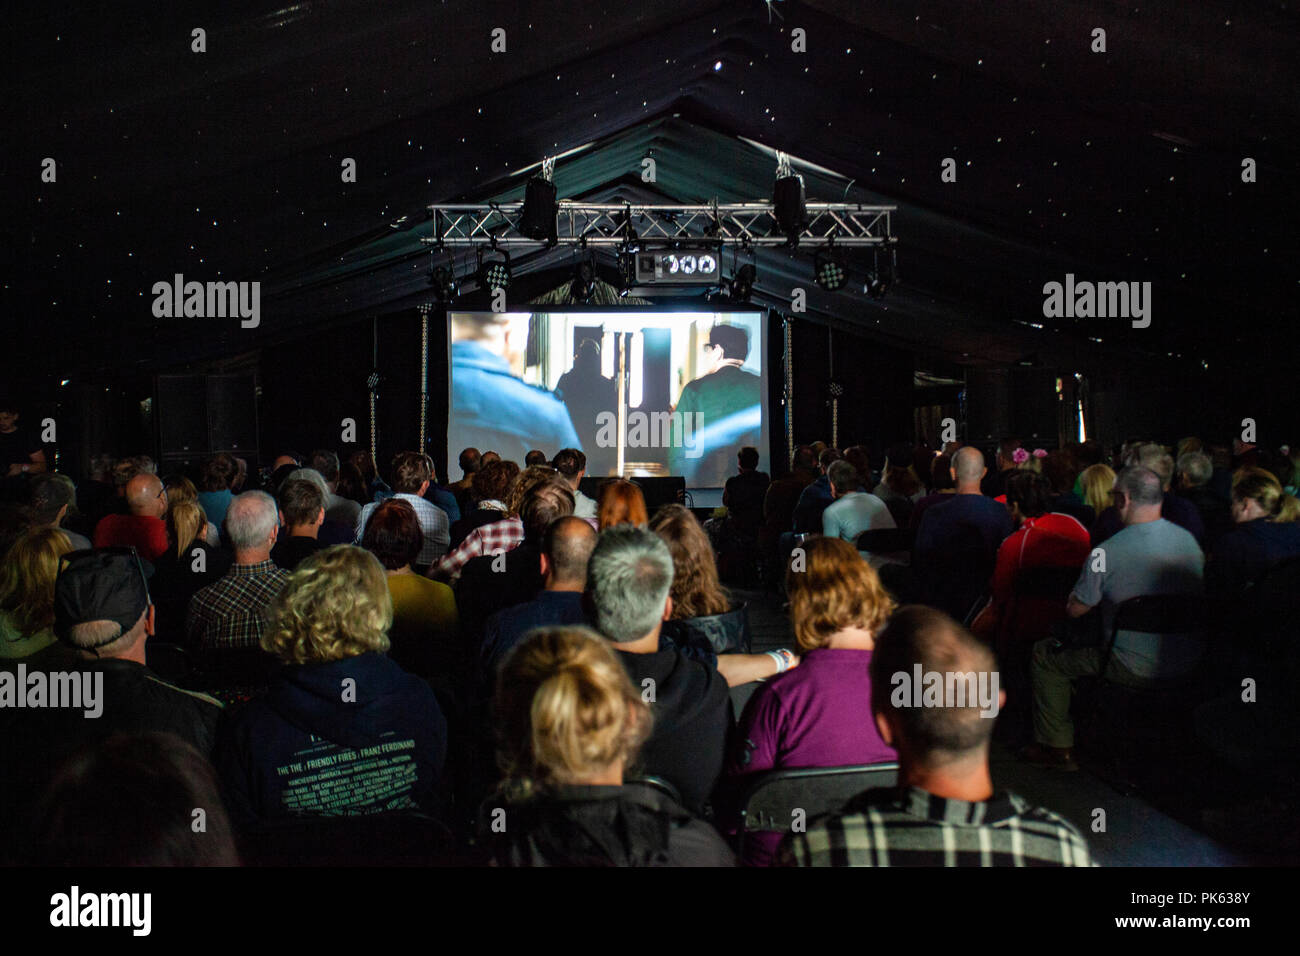 Fans of New Order watching the first ever screening of the documentary movie about New Order called Decades, screened at Festival Number 6, Portmeirion - Stock Image